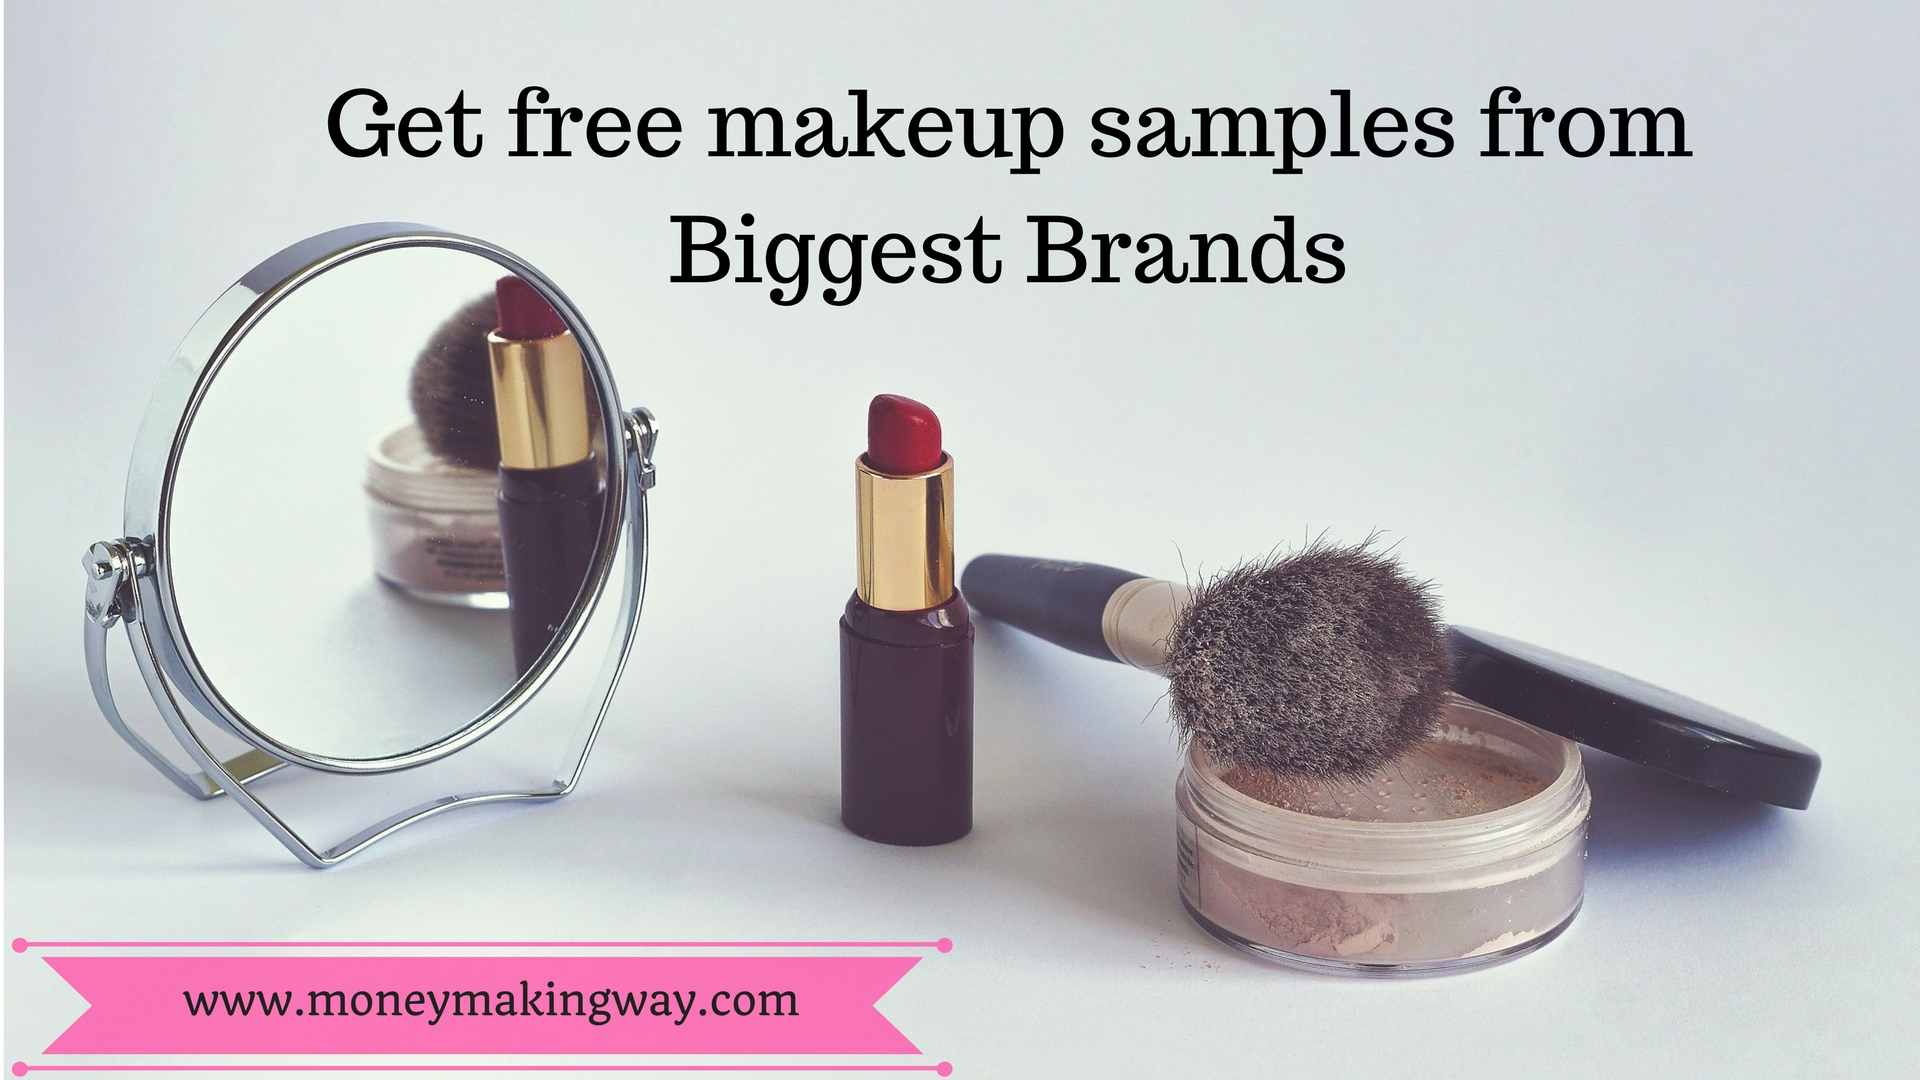 Big Brands and Retail stores that offer free makeup samples